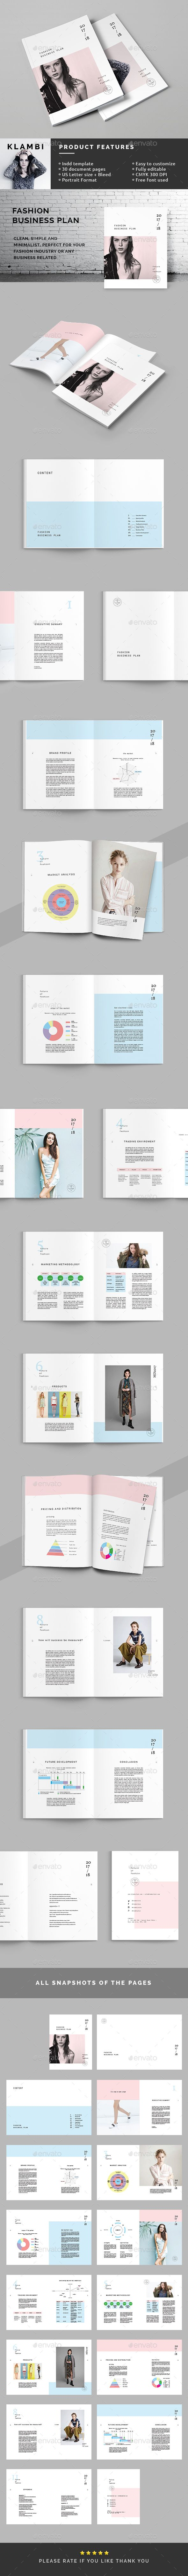 Fashion Business Plan By BOXKAYU The Business Plan Is A Simple - Business plan template indesign